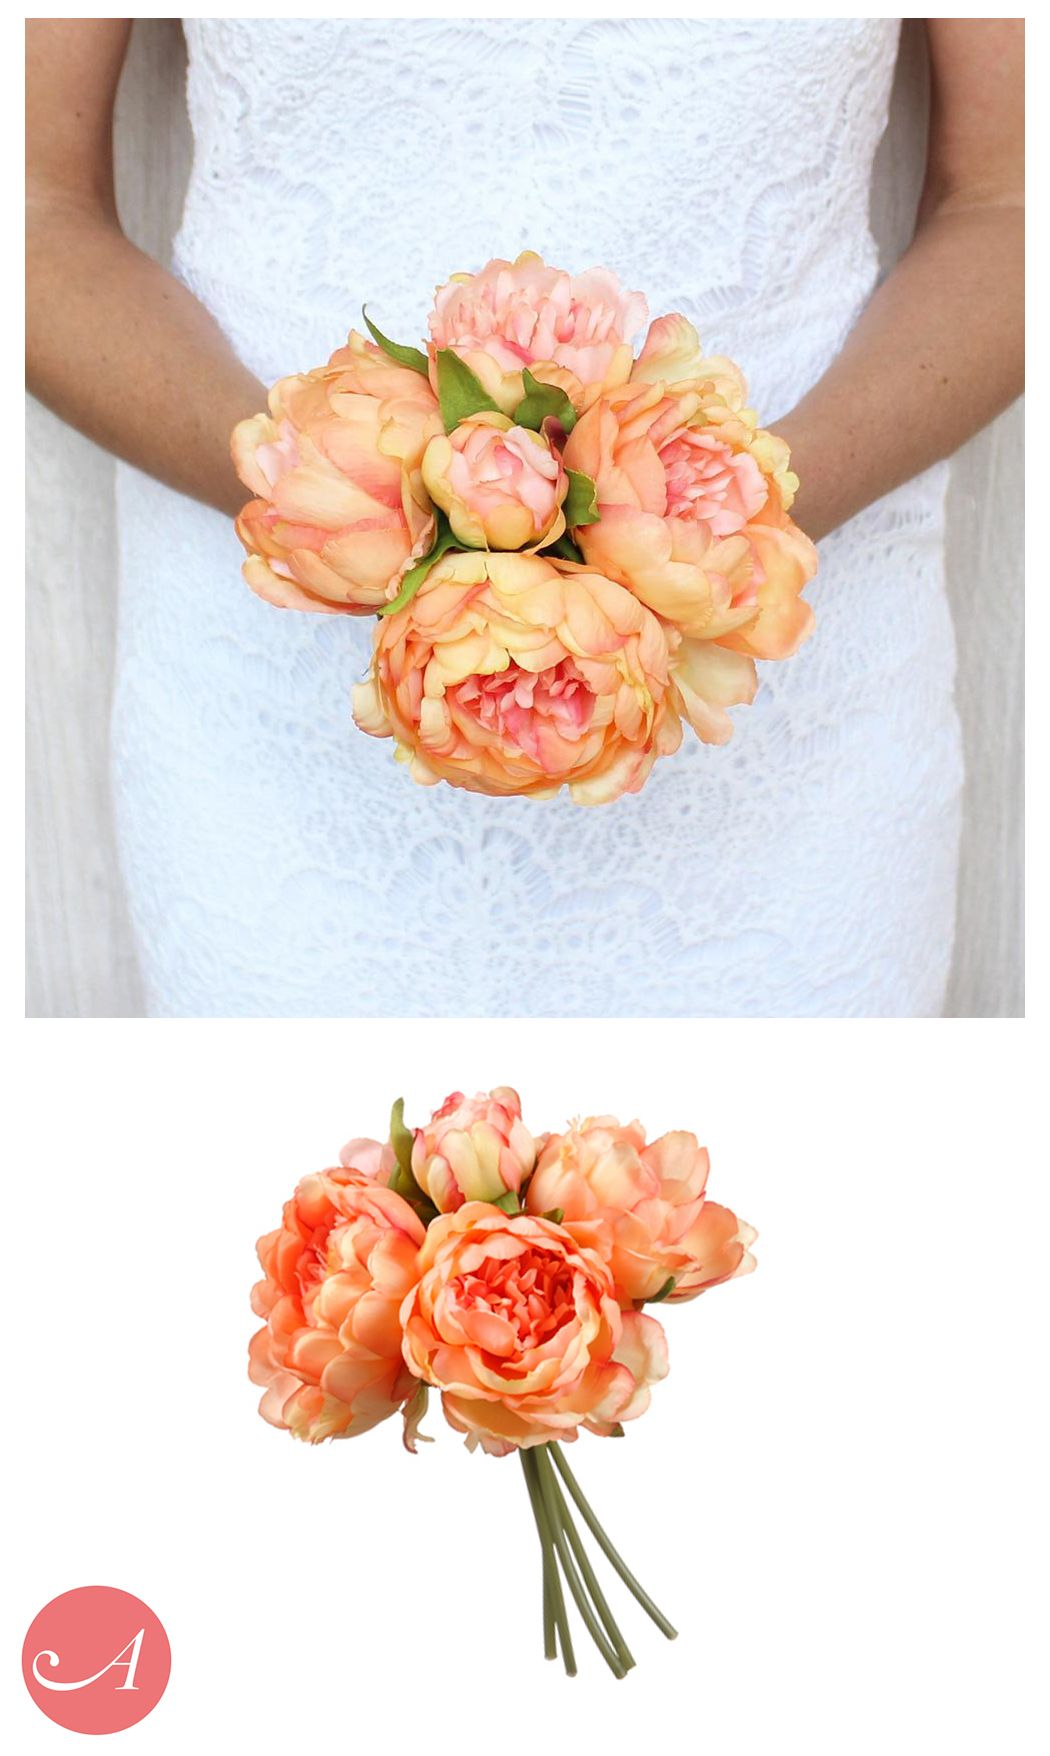 Bouquets under $25 at Afloral.com. Pre-made silk flower bouquets ...